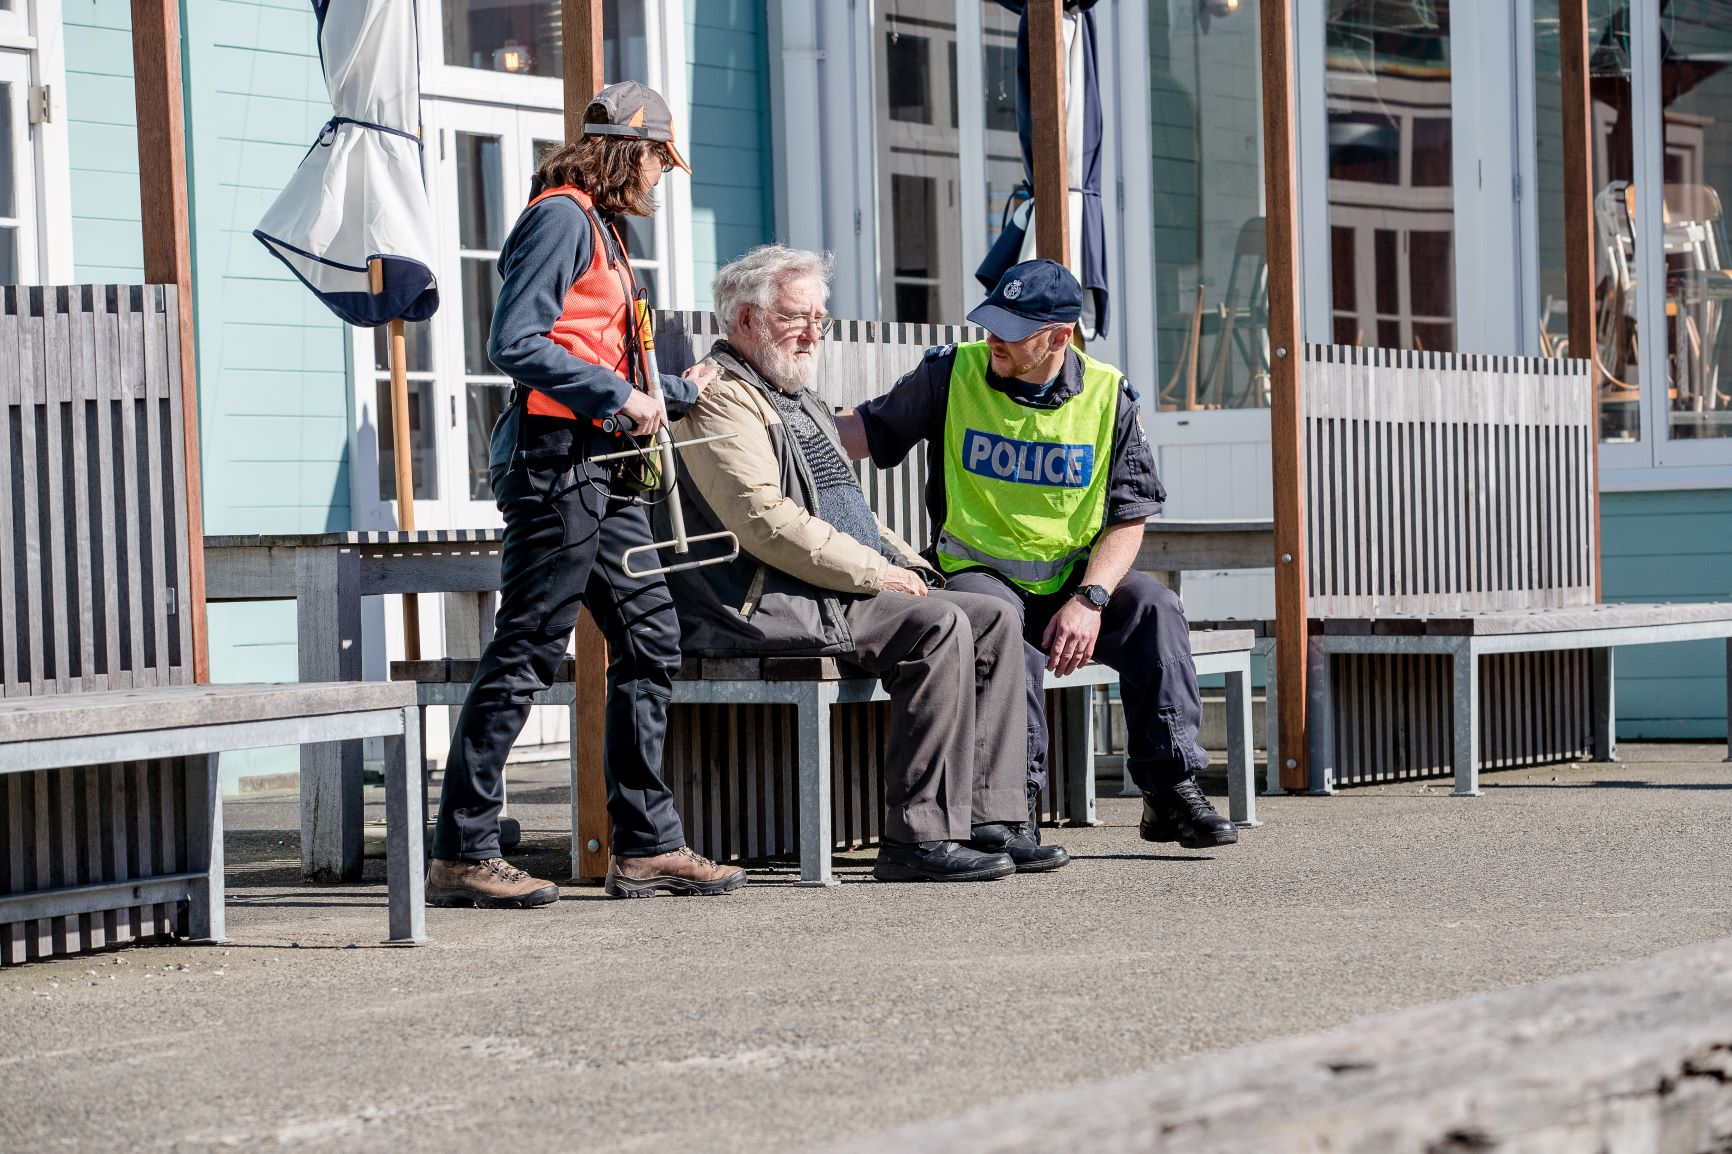 Police with Land Search and Rescue find a lost person (model) in Wellington Water Front using the Wander Search system. Photo credit: NZ Police